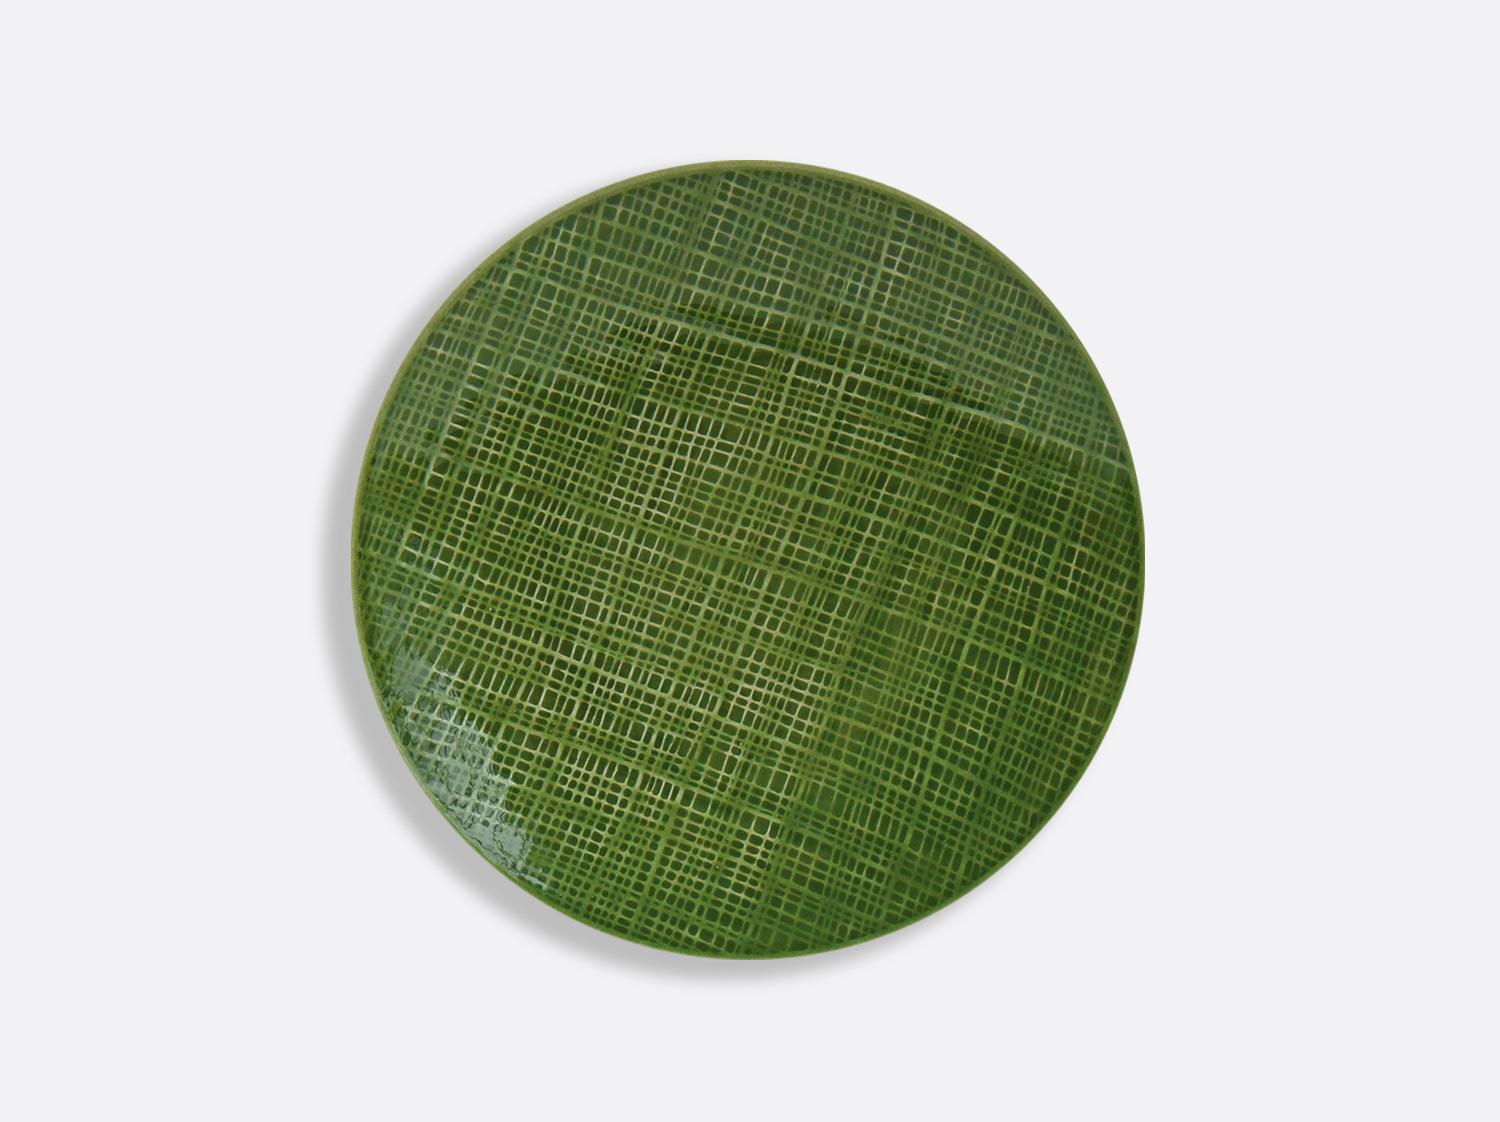 China Vert Chartreux coupe plate 21 cm of the collection ORGANZA VERT CHARTREUX | Bernardaud